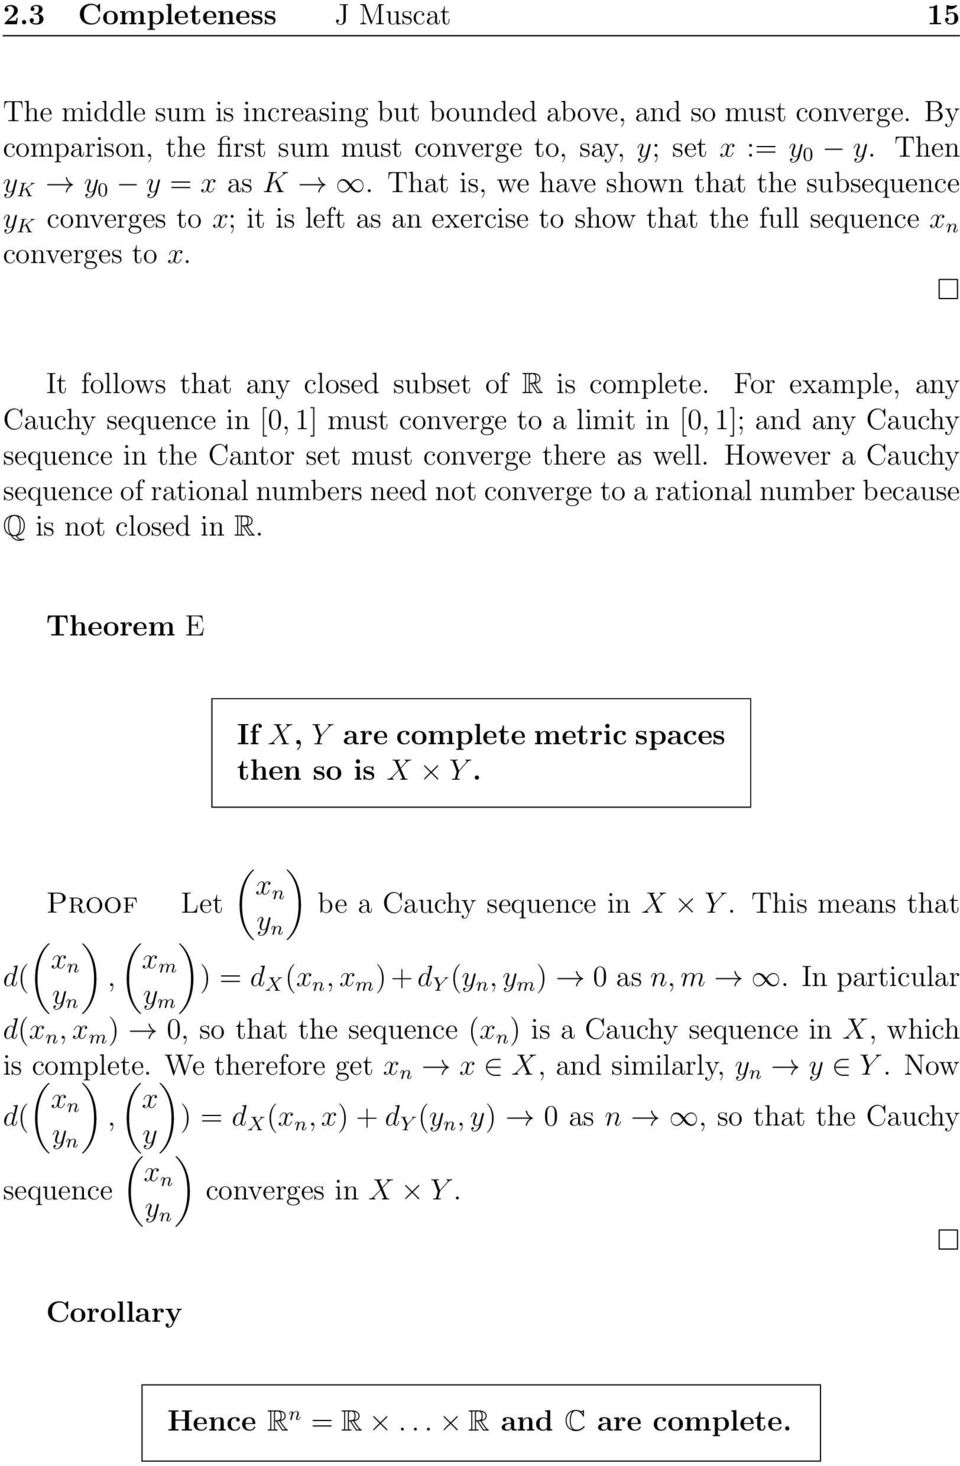 For example, any Cauchy sequence in [0, 1] must converge to a limit in [0, 1]; and any Cauchy sequence in the Cantor set must converge there as well.